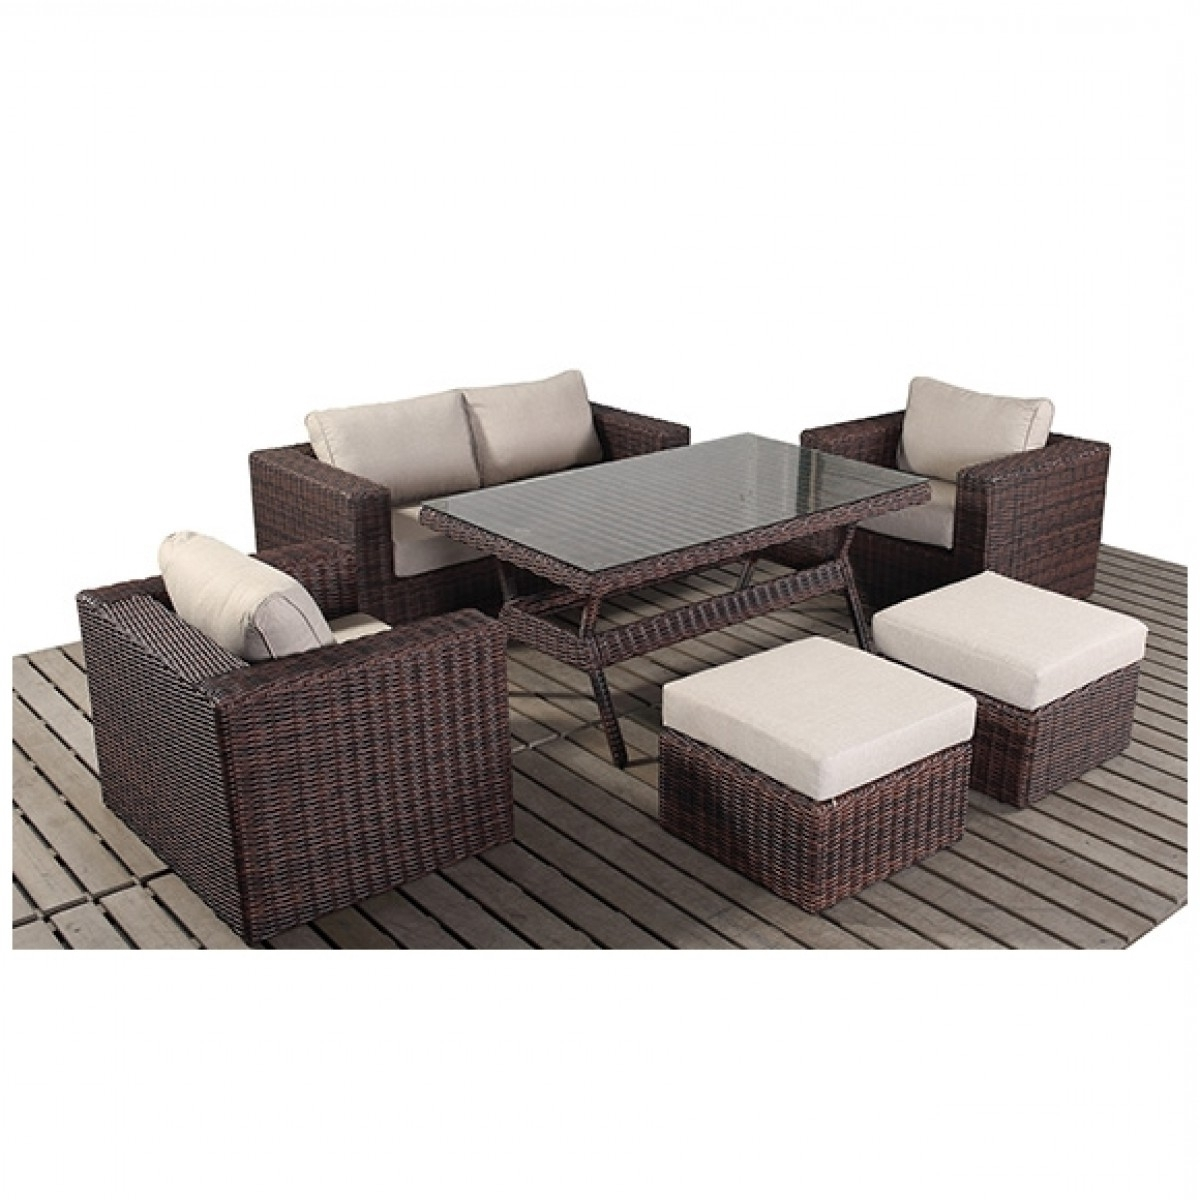 Windsor Sofas In Popular Rattan Sets – Windsor Sofa Table Set Wgf  (View 16 of 20)